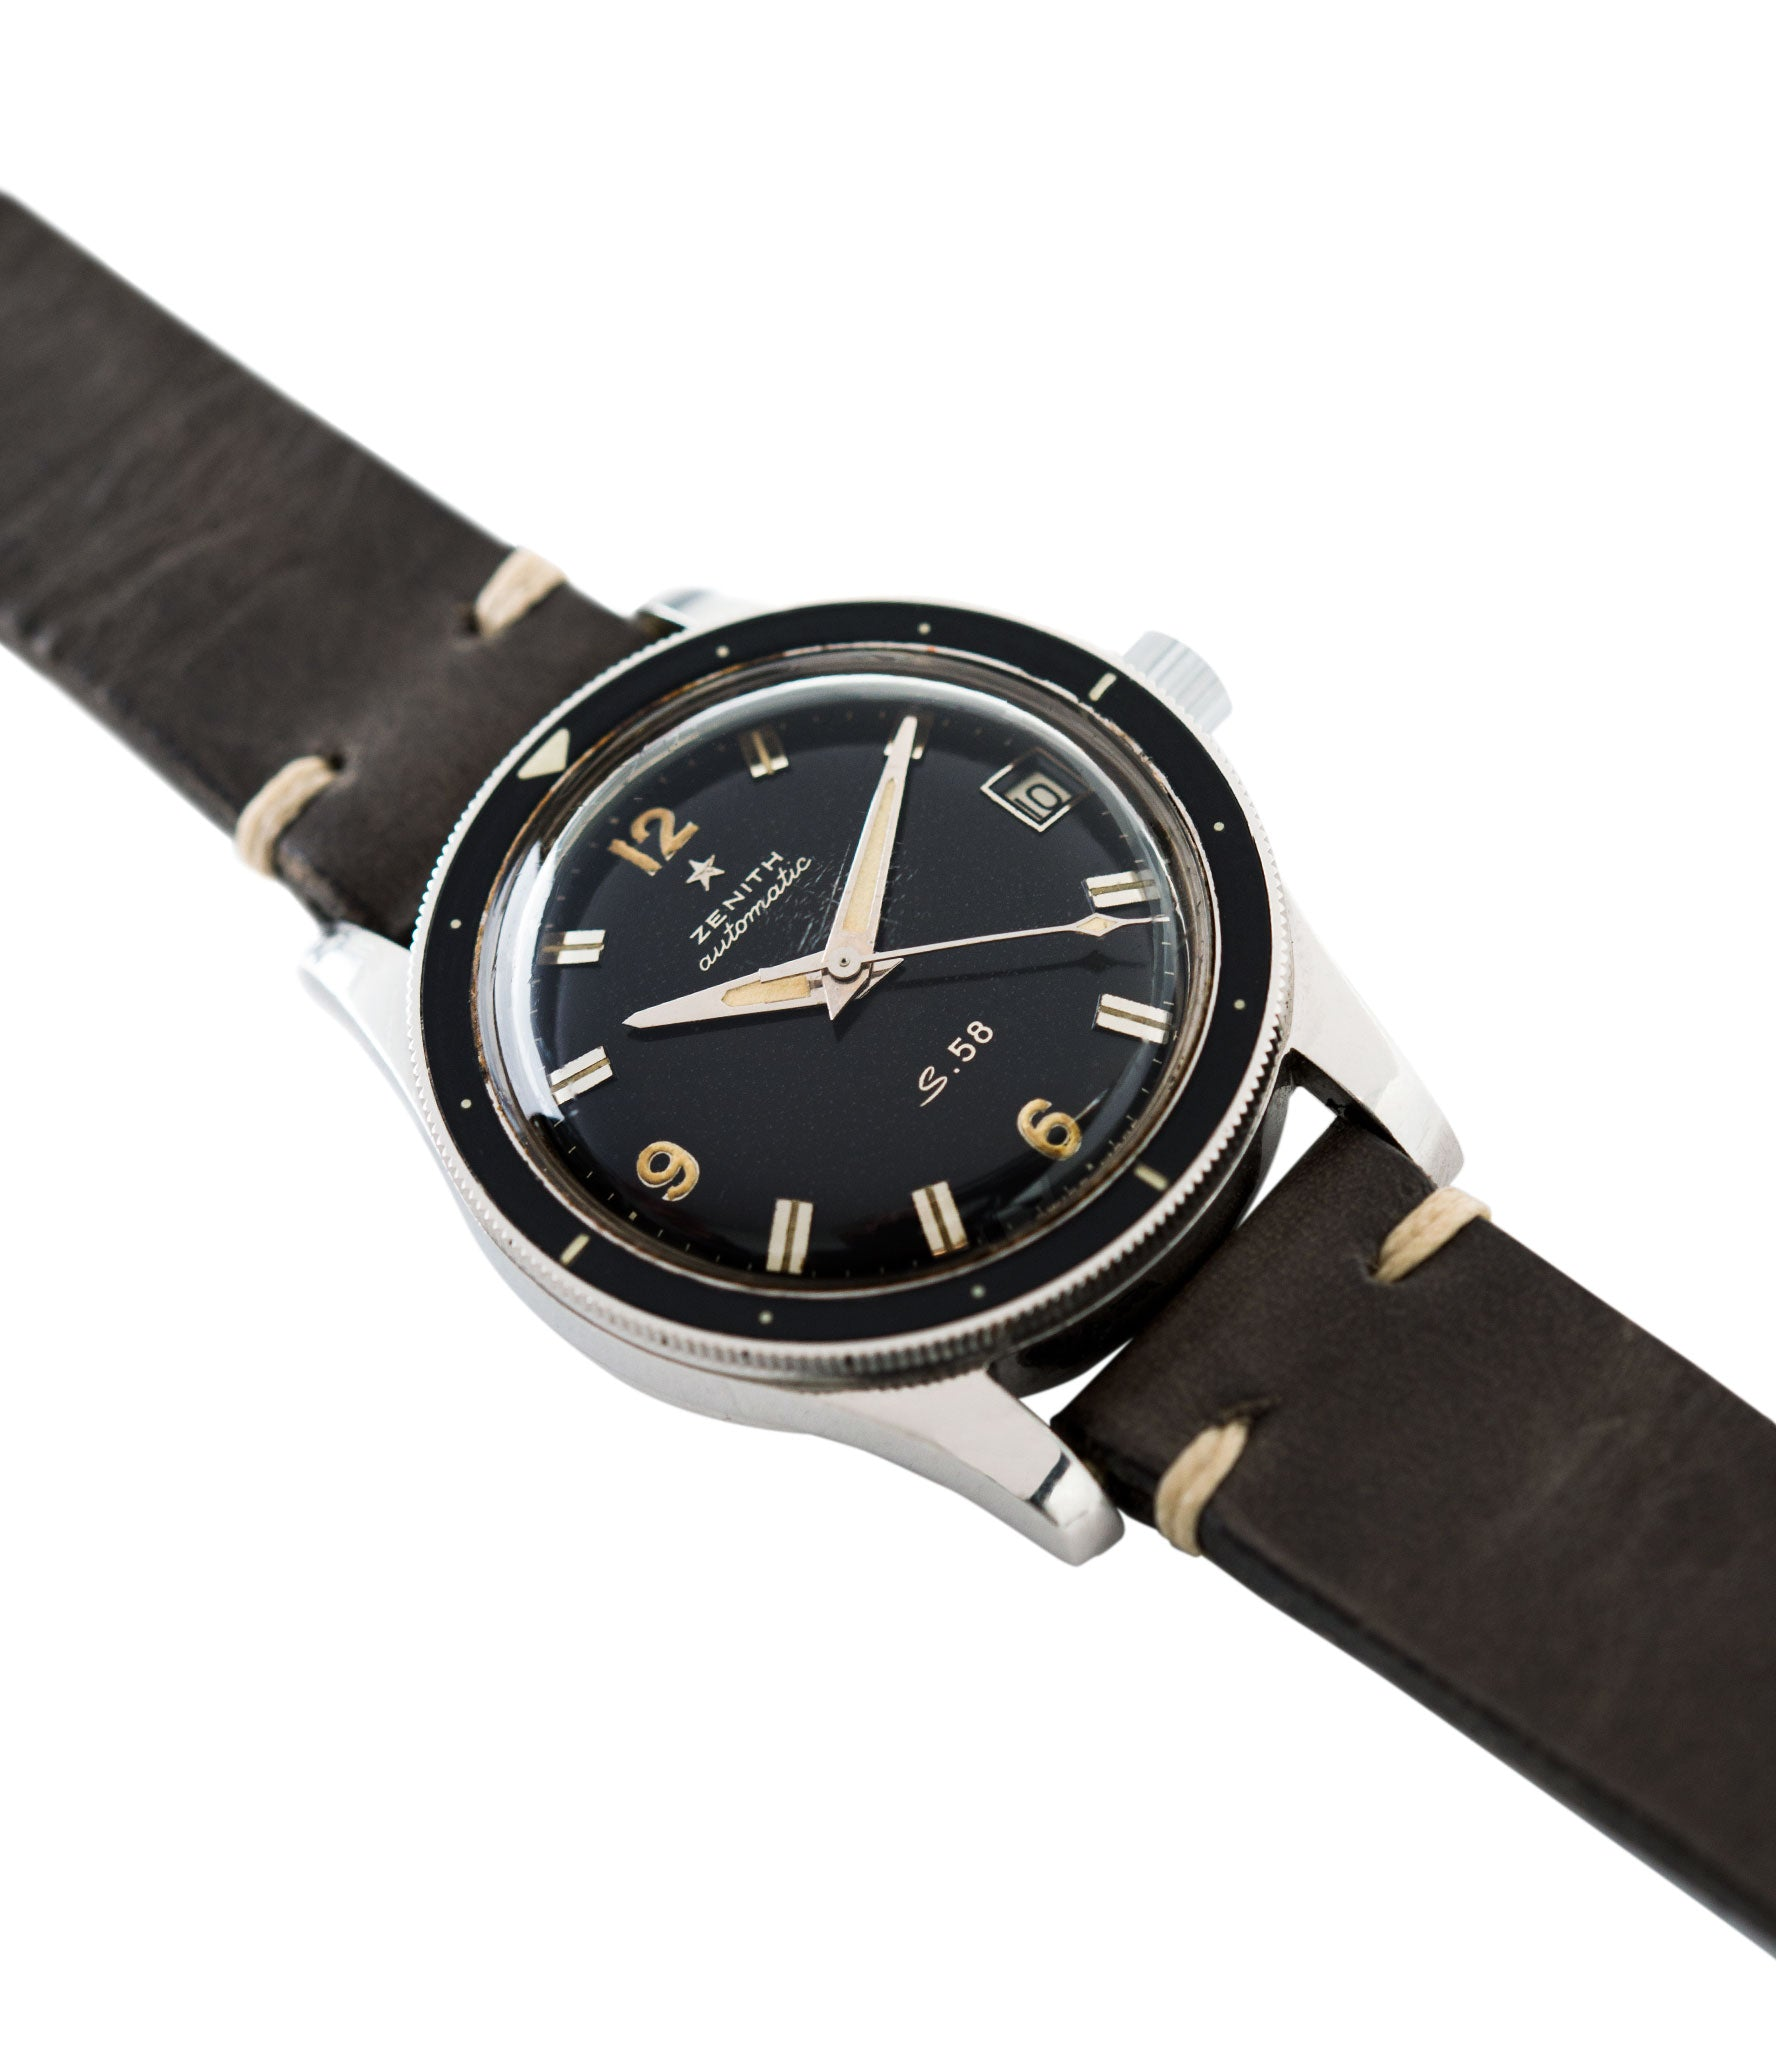 rare S.58 Zenith Cal 2542 PC vintage steel divers watch bakelite bezel for sale online at A Collected Man London UK specialist rare vintage watches